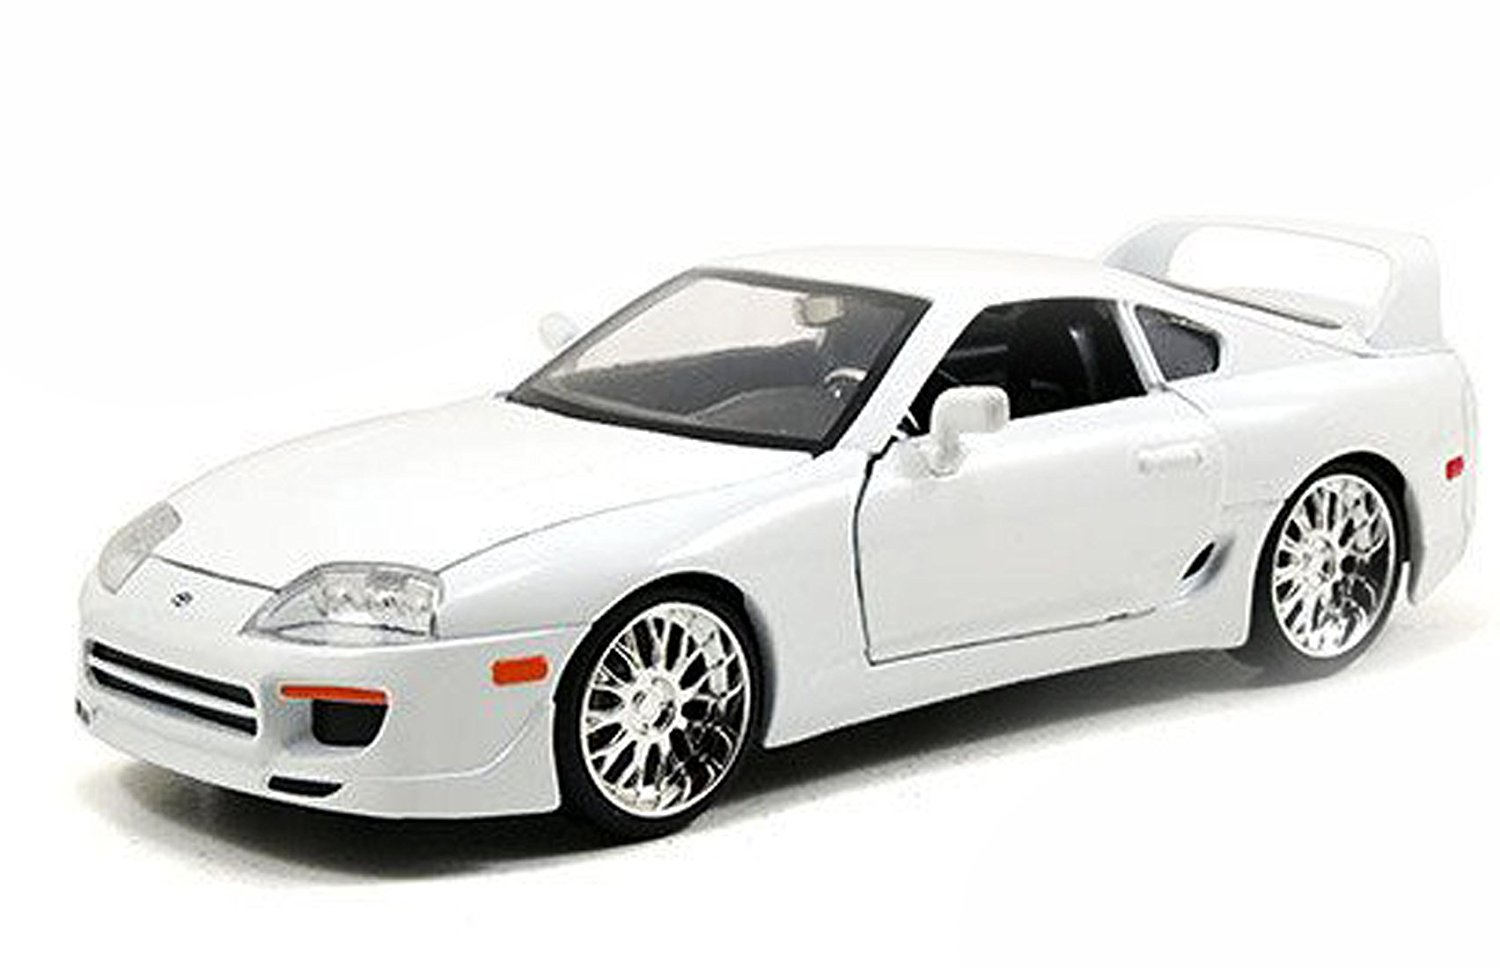 Cheap Toyota Supra Toy Car Find Toyota Supra Toy Car Deals On - Fast car deals